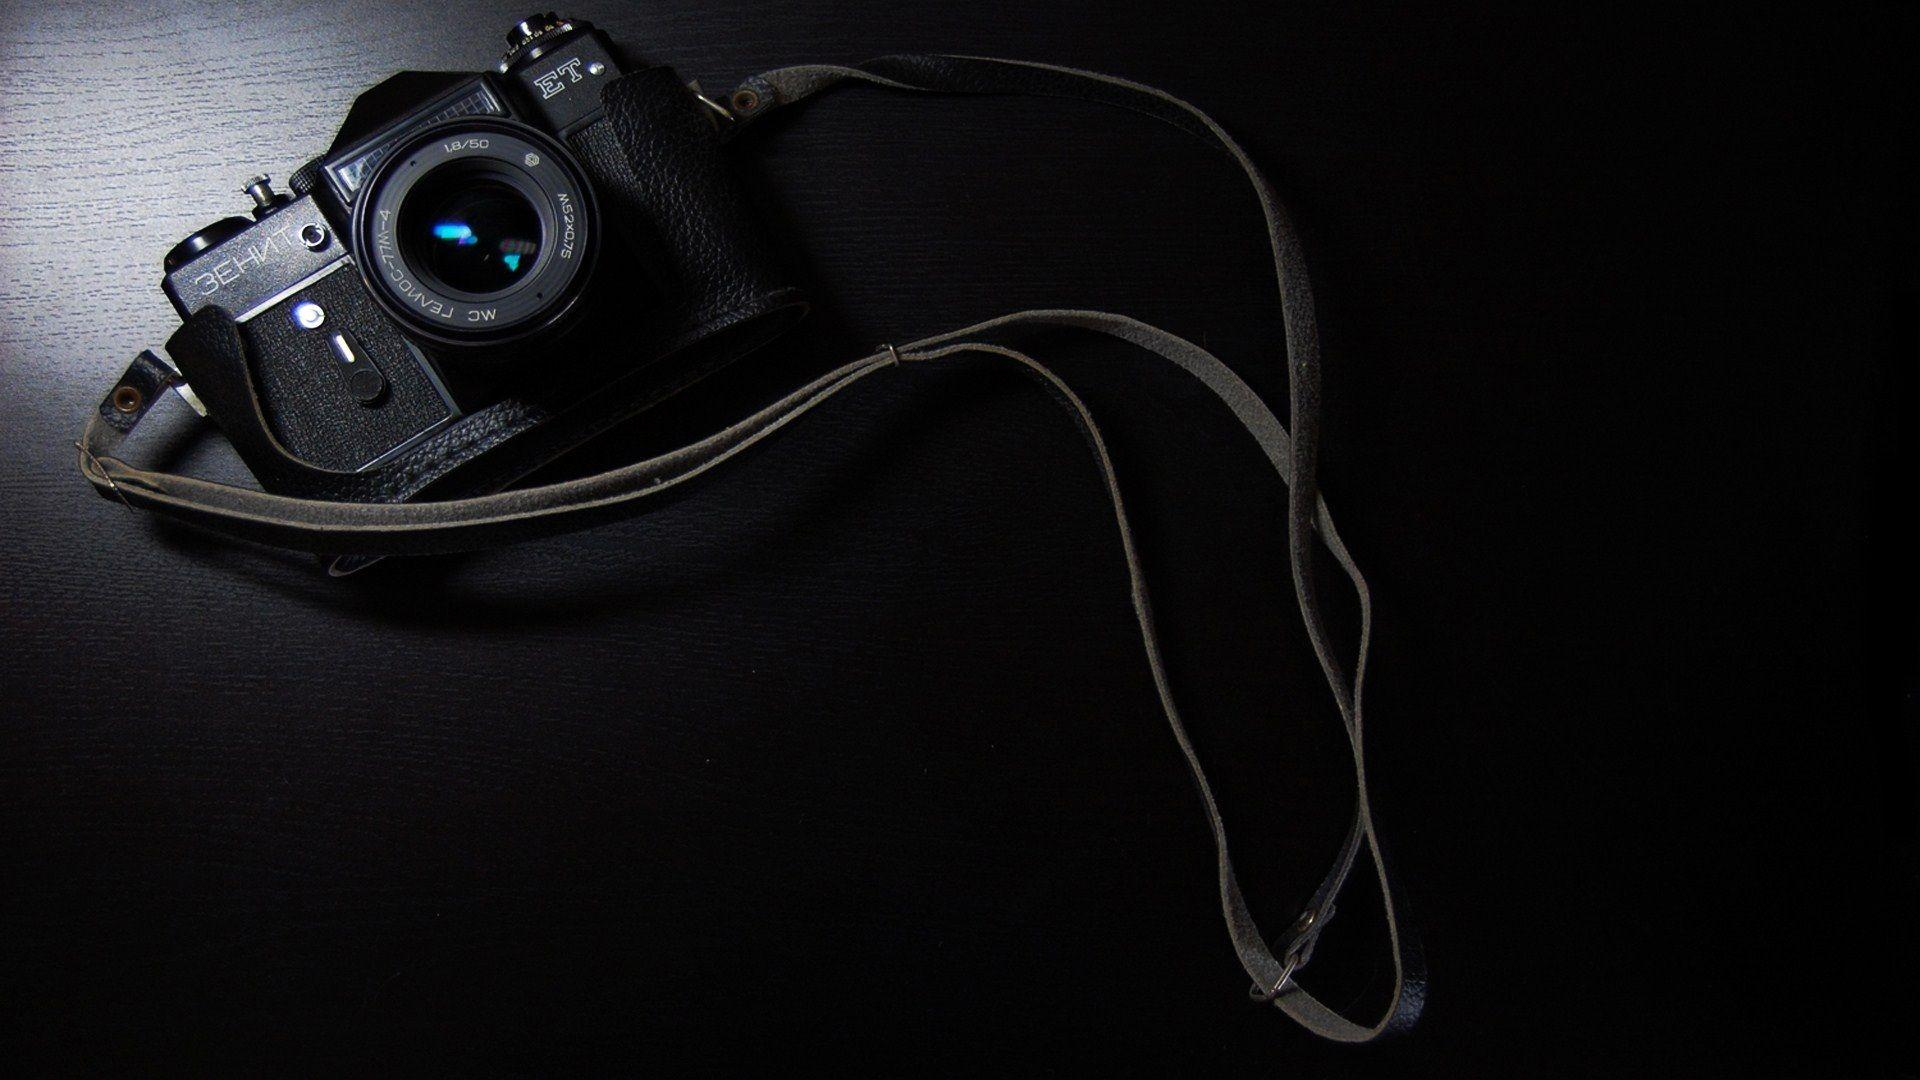 Zenit Camera, ET, camera, black, hi-tech, technology, wallpaper